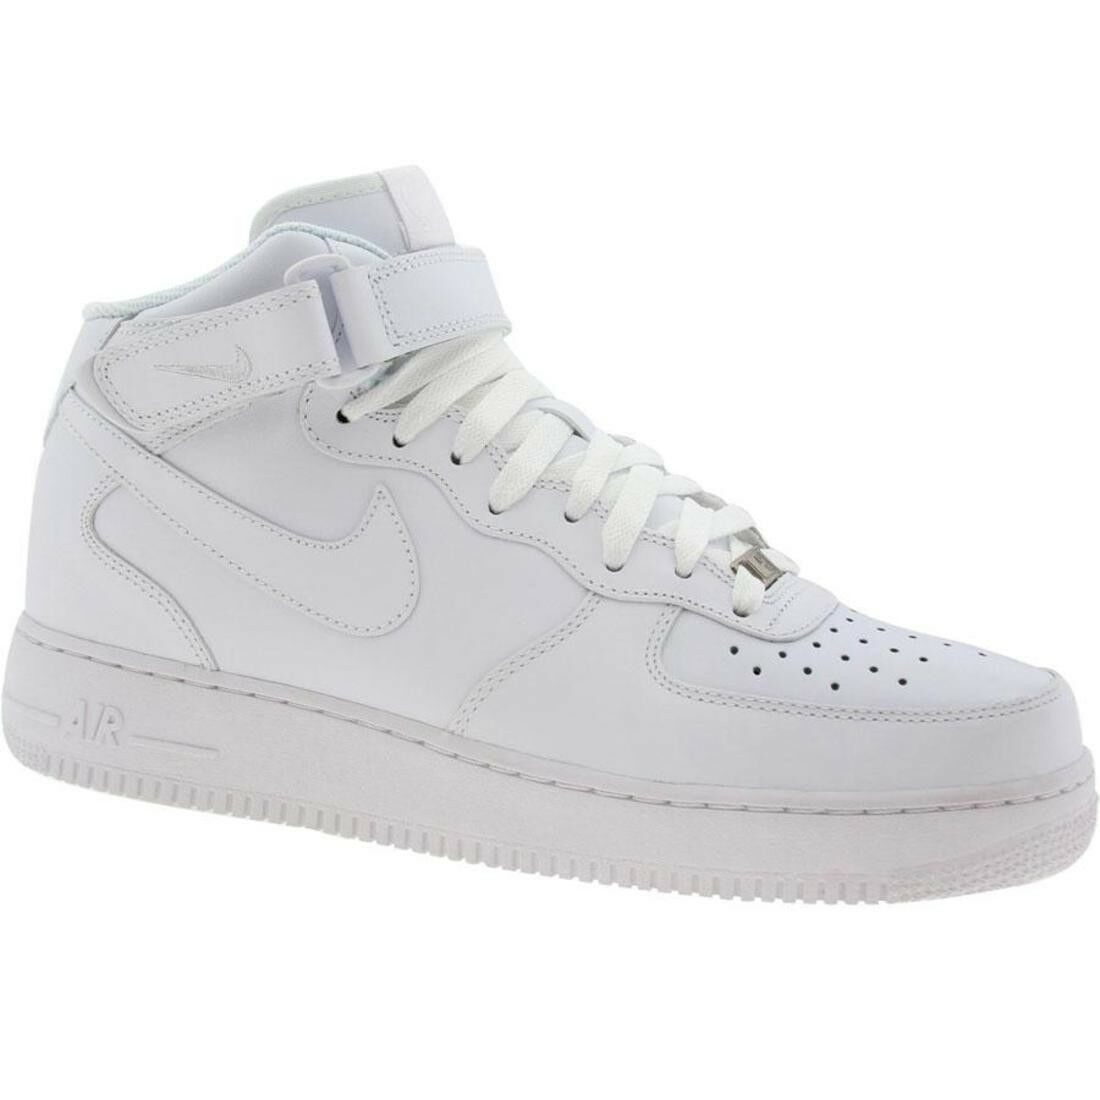 315123-111 Nike Hommes Air Force Mid 1 07 Mid Force 501603